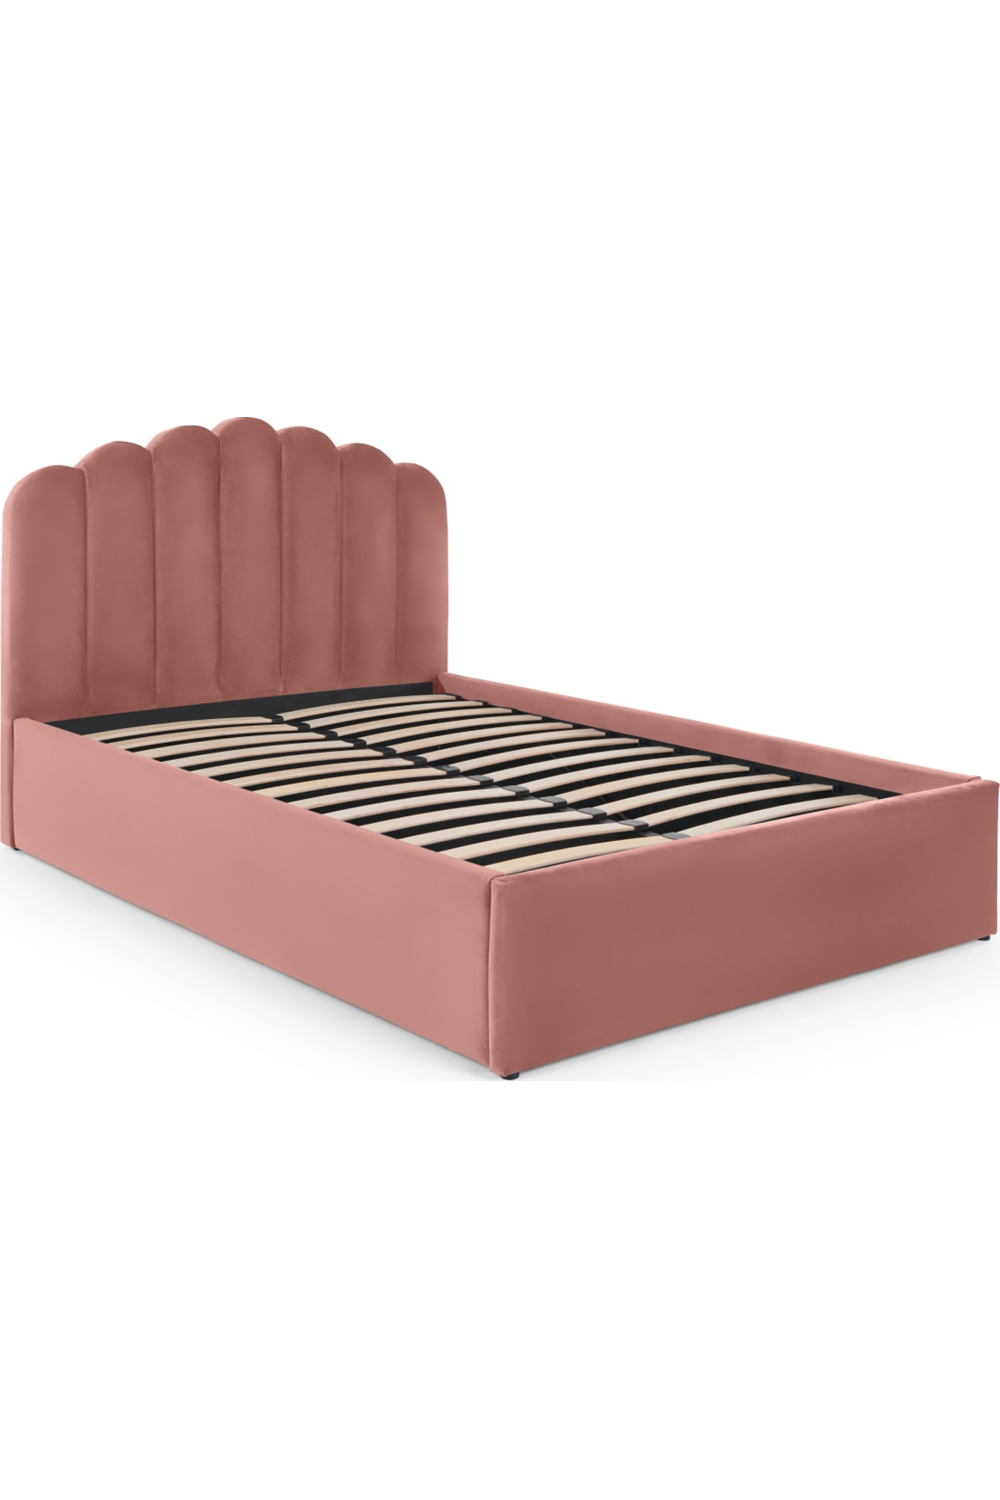 Kids Furniture Valerie Twin Bed Pink Pink Twin Bed Pink Bedding